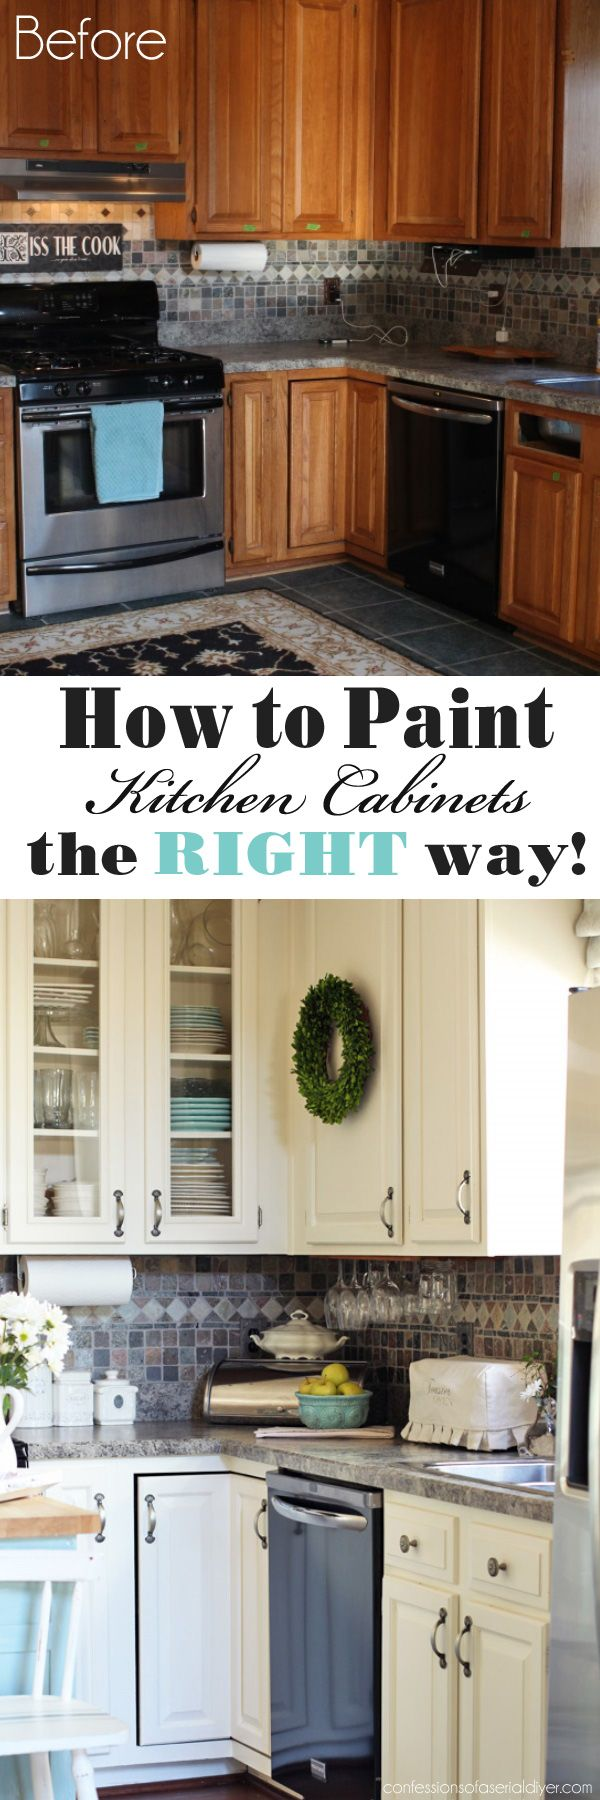 best 25 stain kitchen cabinets ideas on pinterest staining how to paint kitchen cabinets the right way from confessions of a serial do it